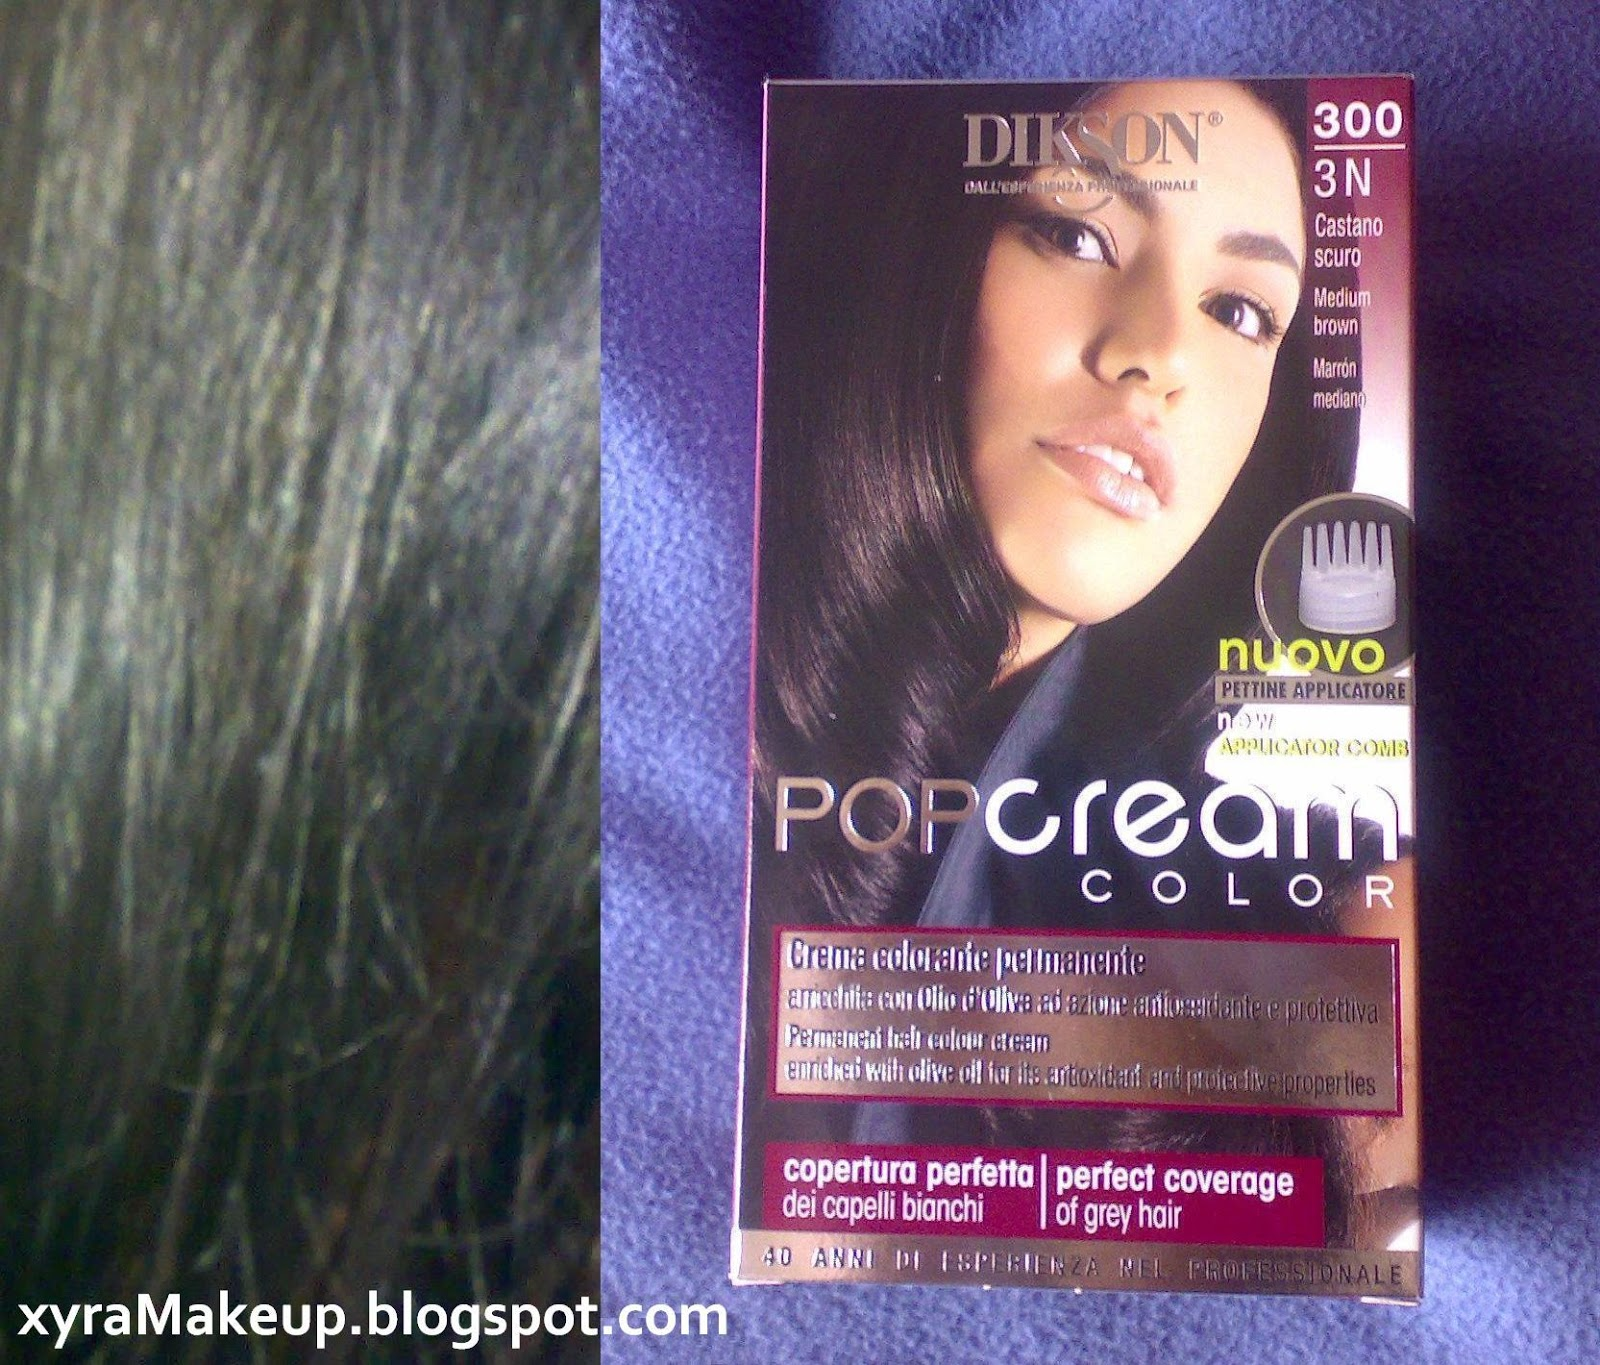 Dikson PopCream Color - recensione tintura nuance castano scuro ...